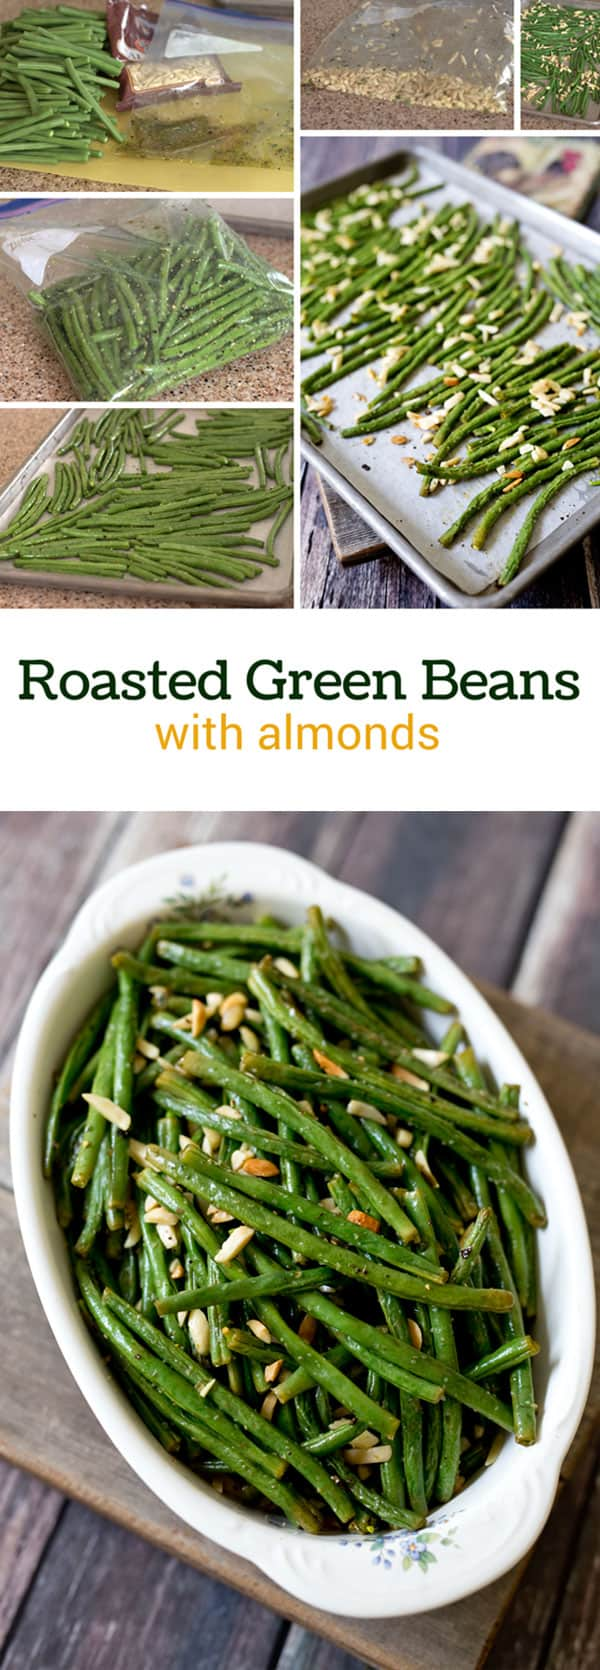 Roasted-Green-Beans-With-Almonds-Collage-2-Barbara-Bakes